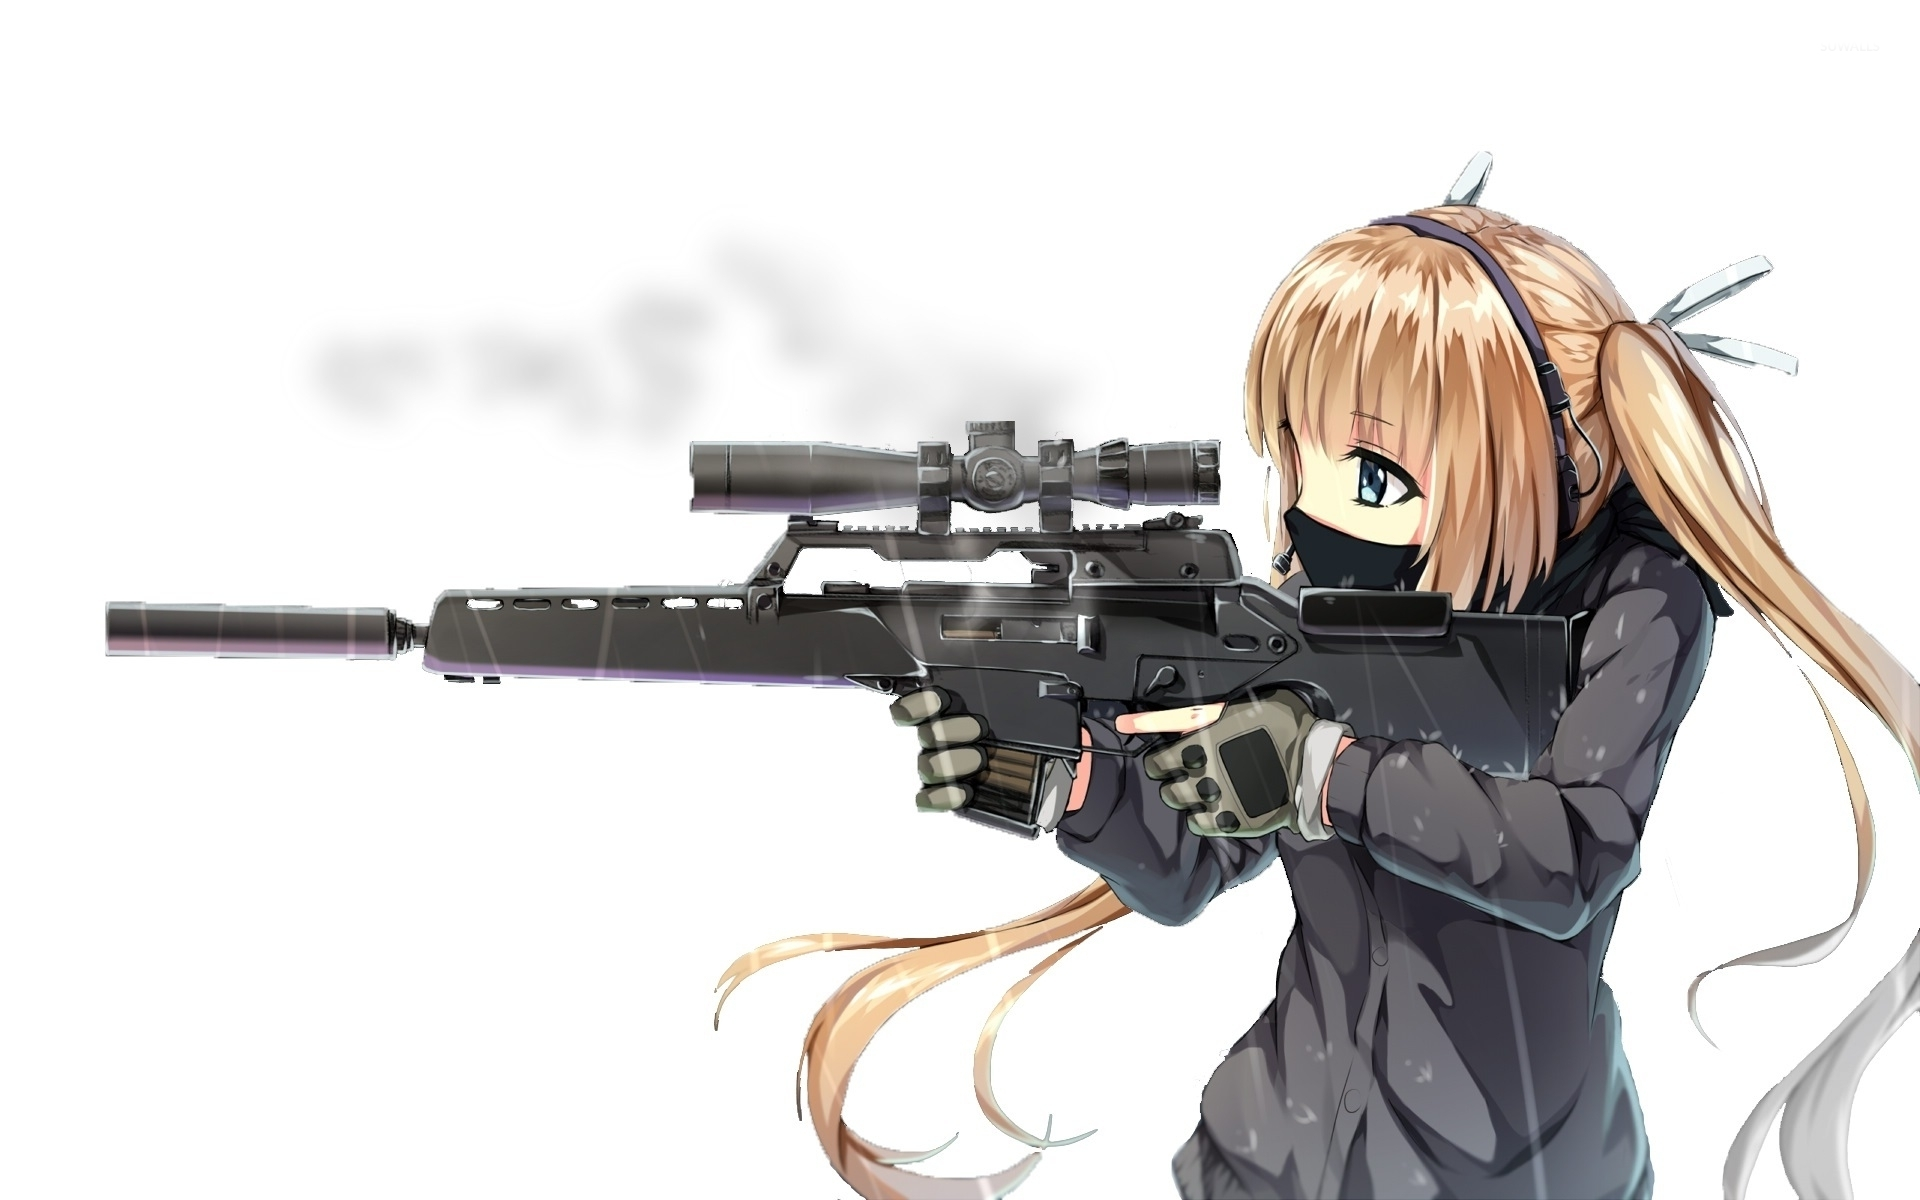 Cute Sniper Wallpaper Anime Wallpapers 47302